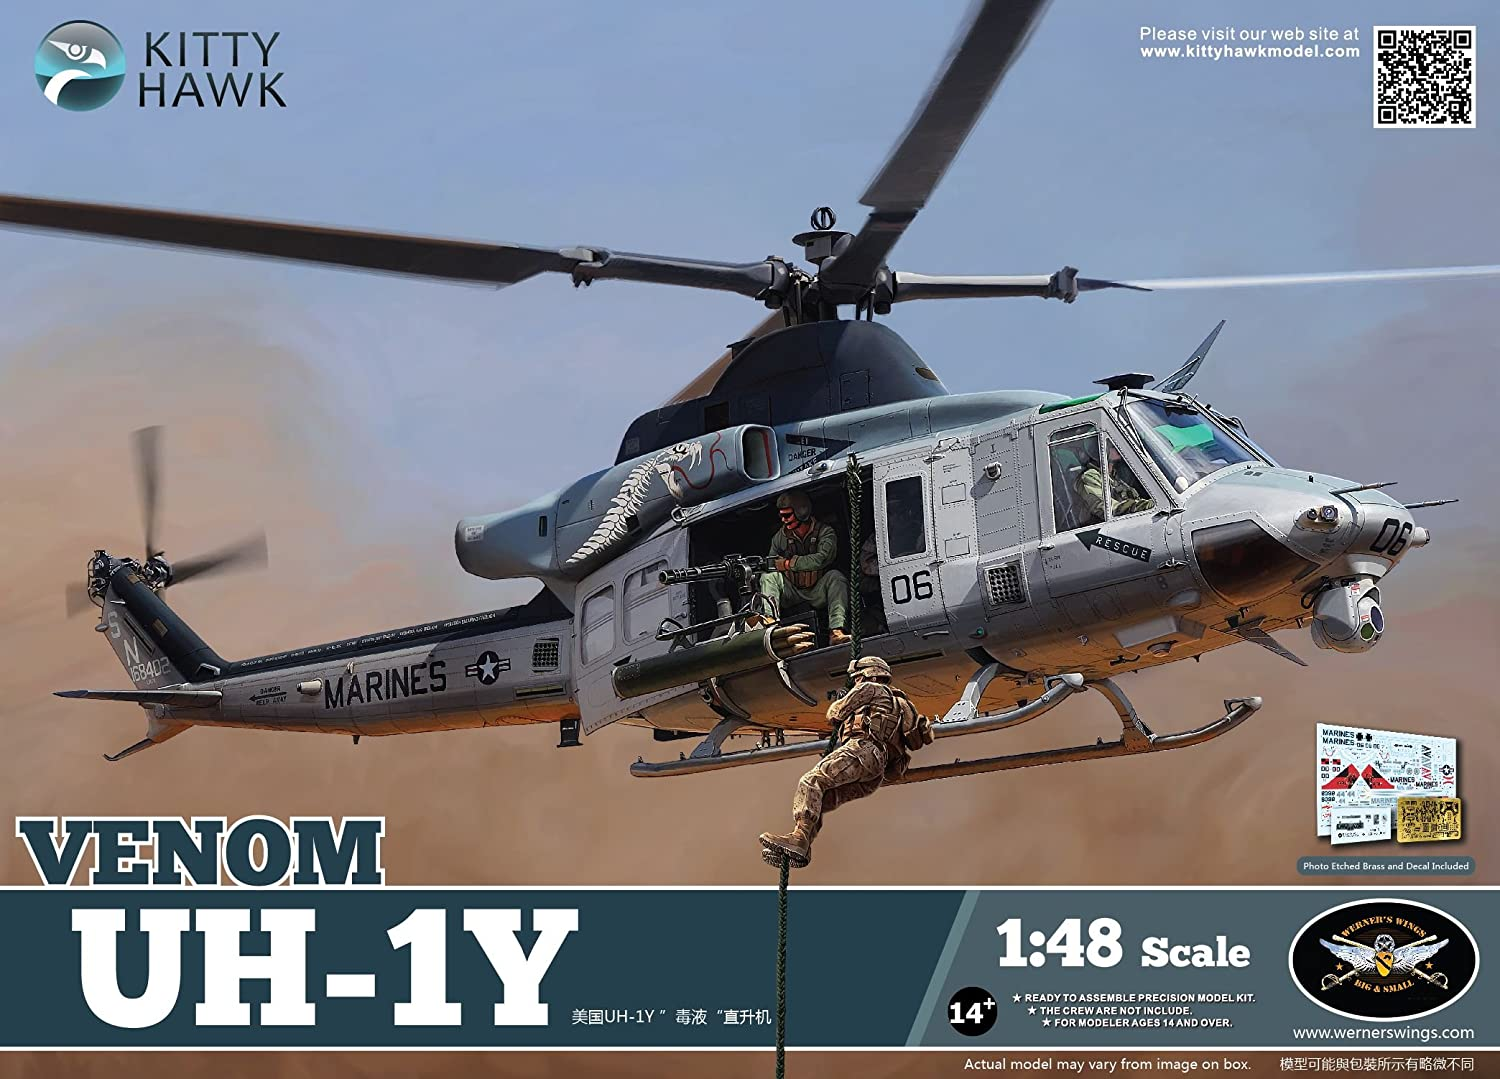 KTH80124 1:48 Kitty Hawk UH-1Y Venom Helicopter [MODEL BUILDING KIT] рюкзак picard 9809 113 023 ozean page 8